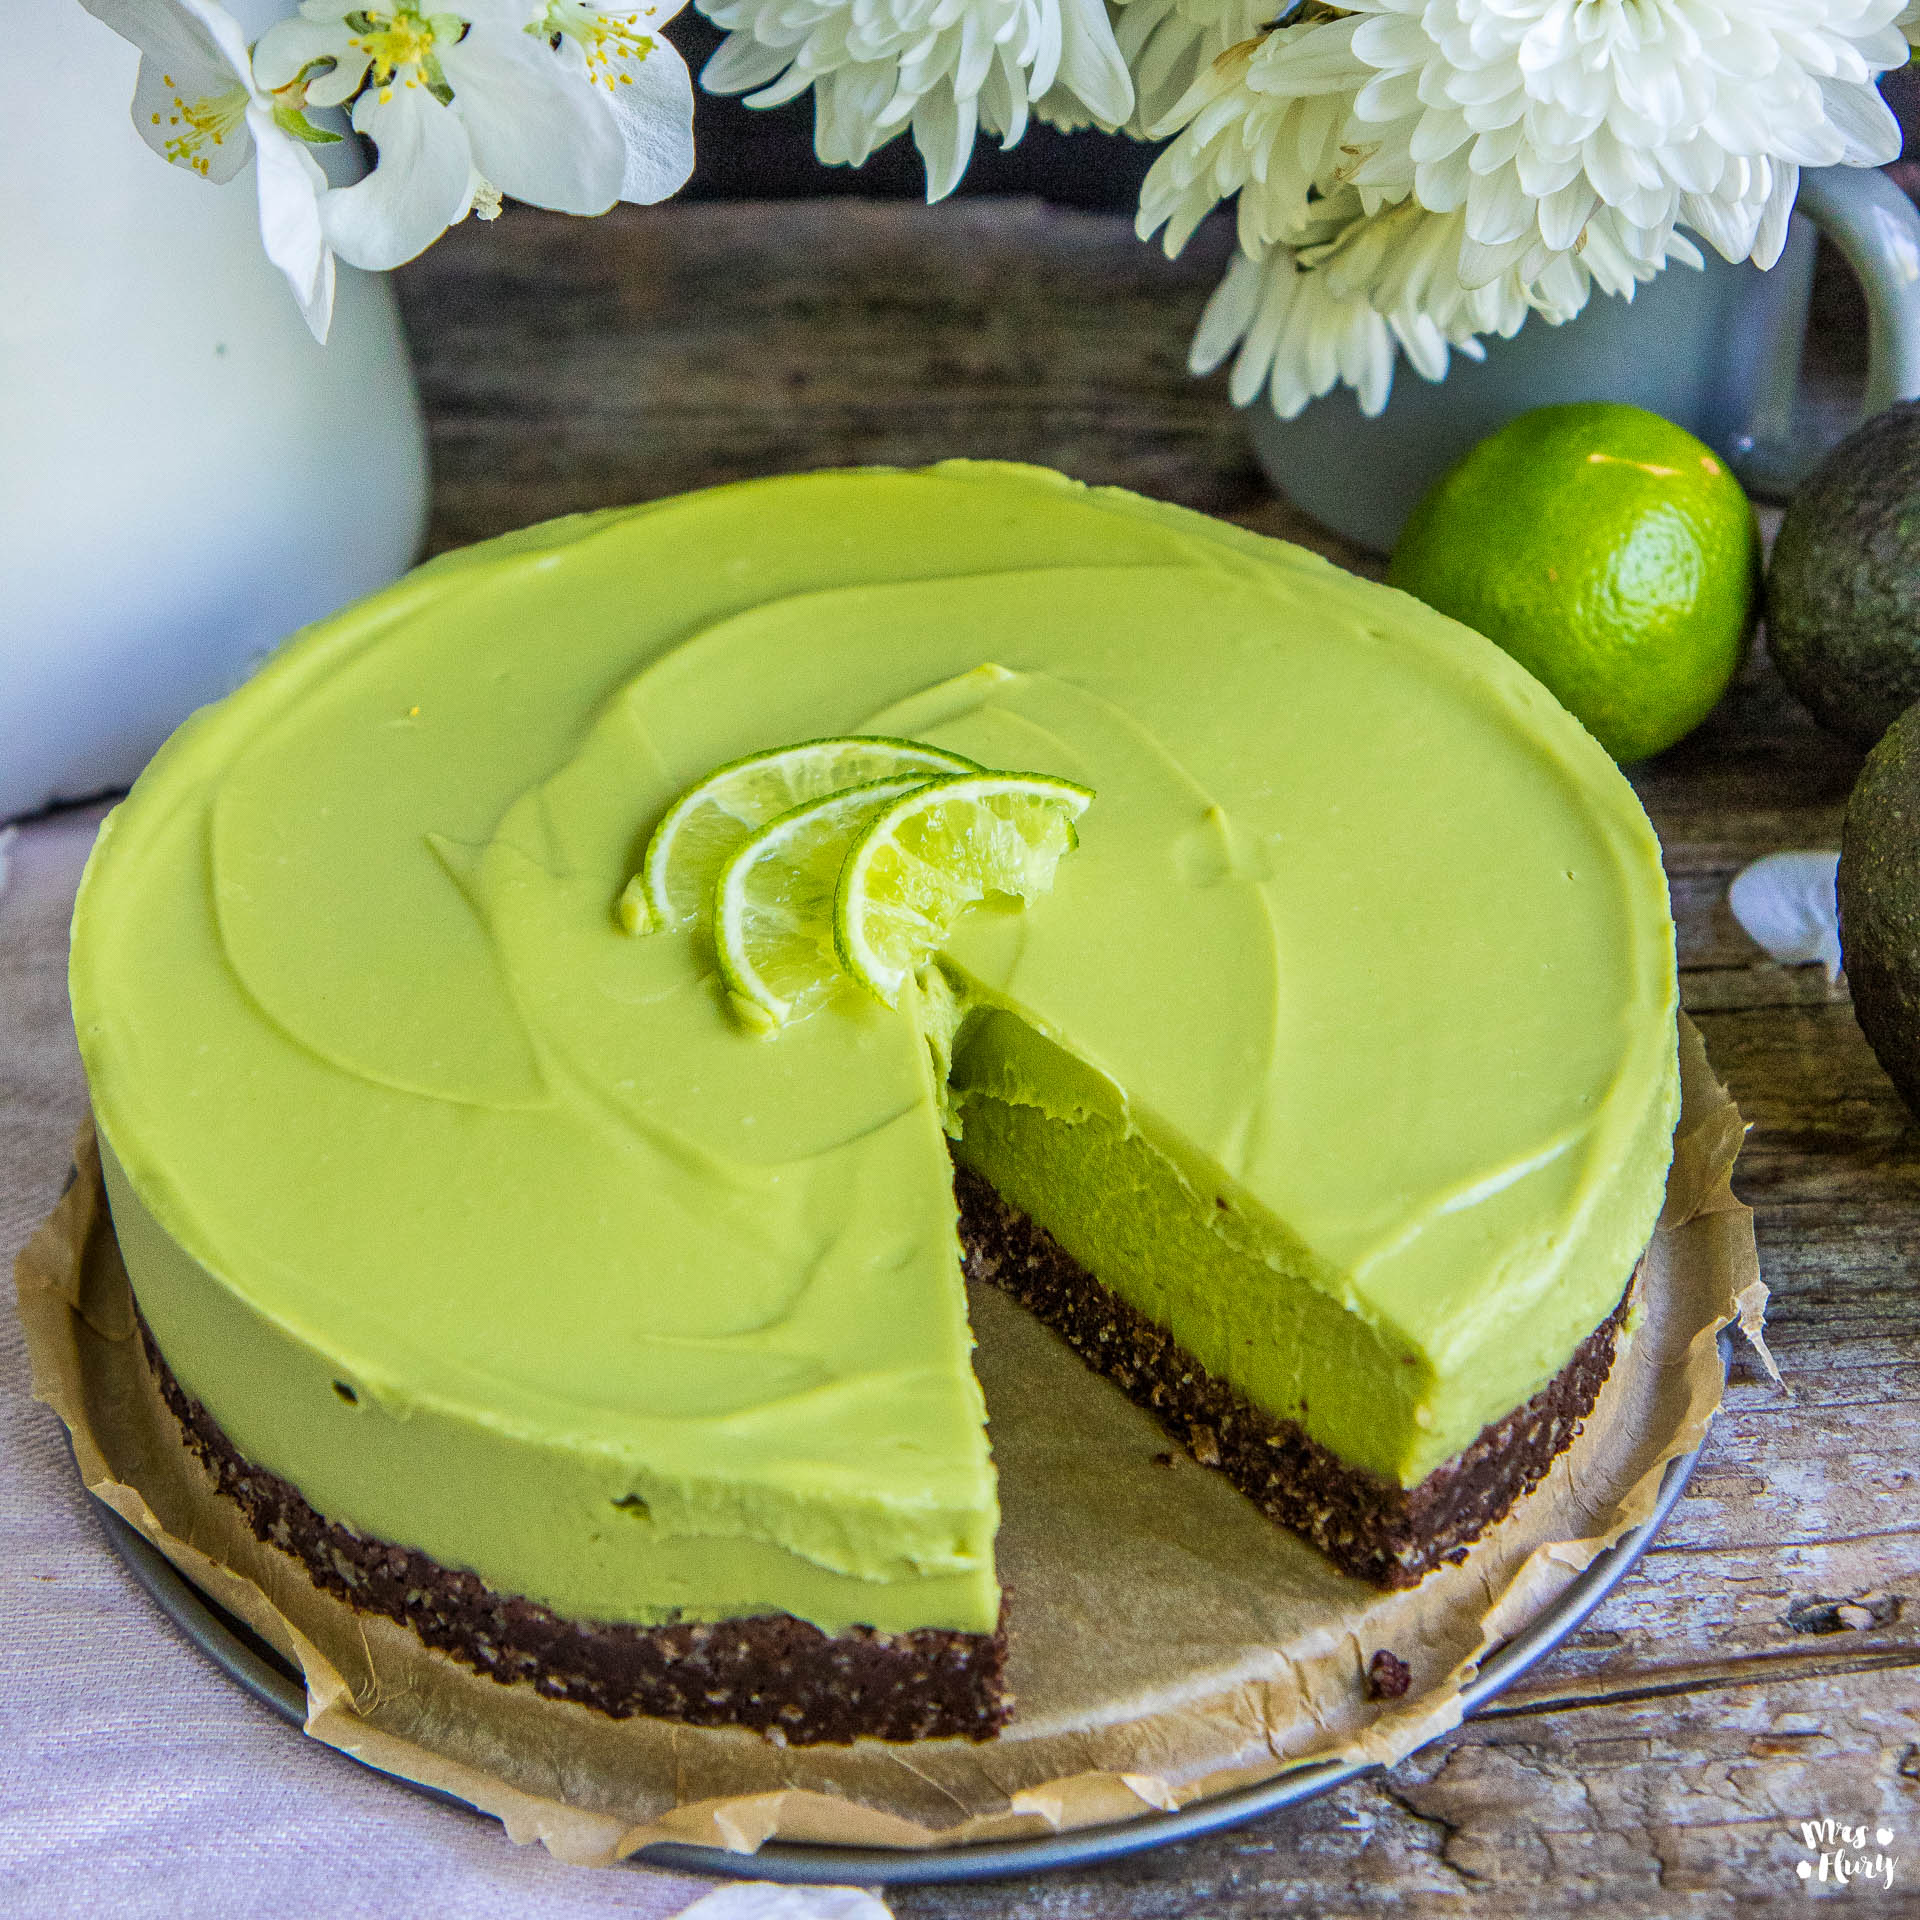 Avocado Cheesecake Vegan Glutenfrei Zuckerfrei Rezept Mrs Flury